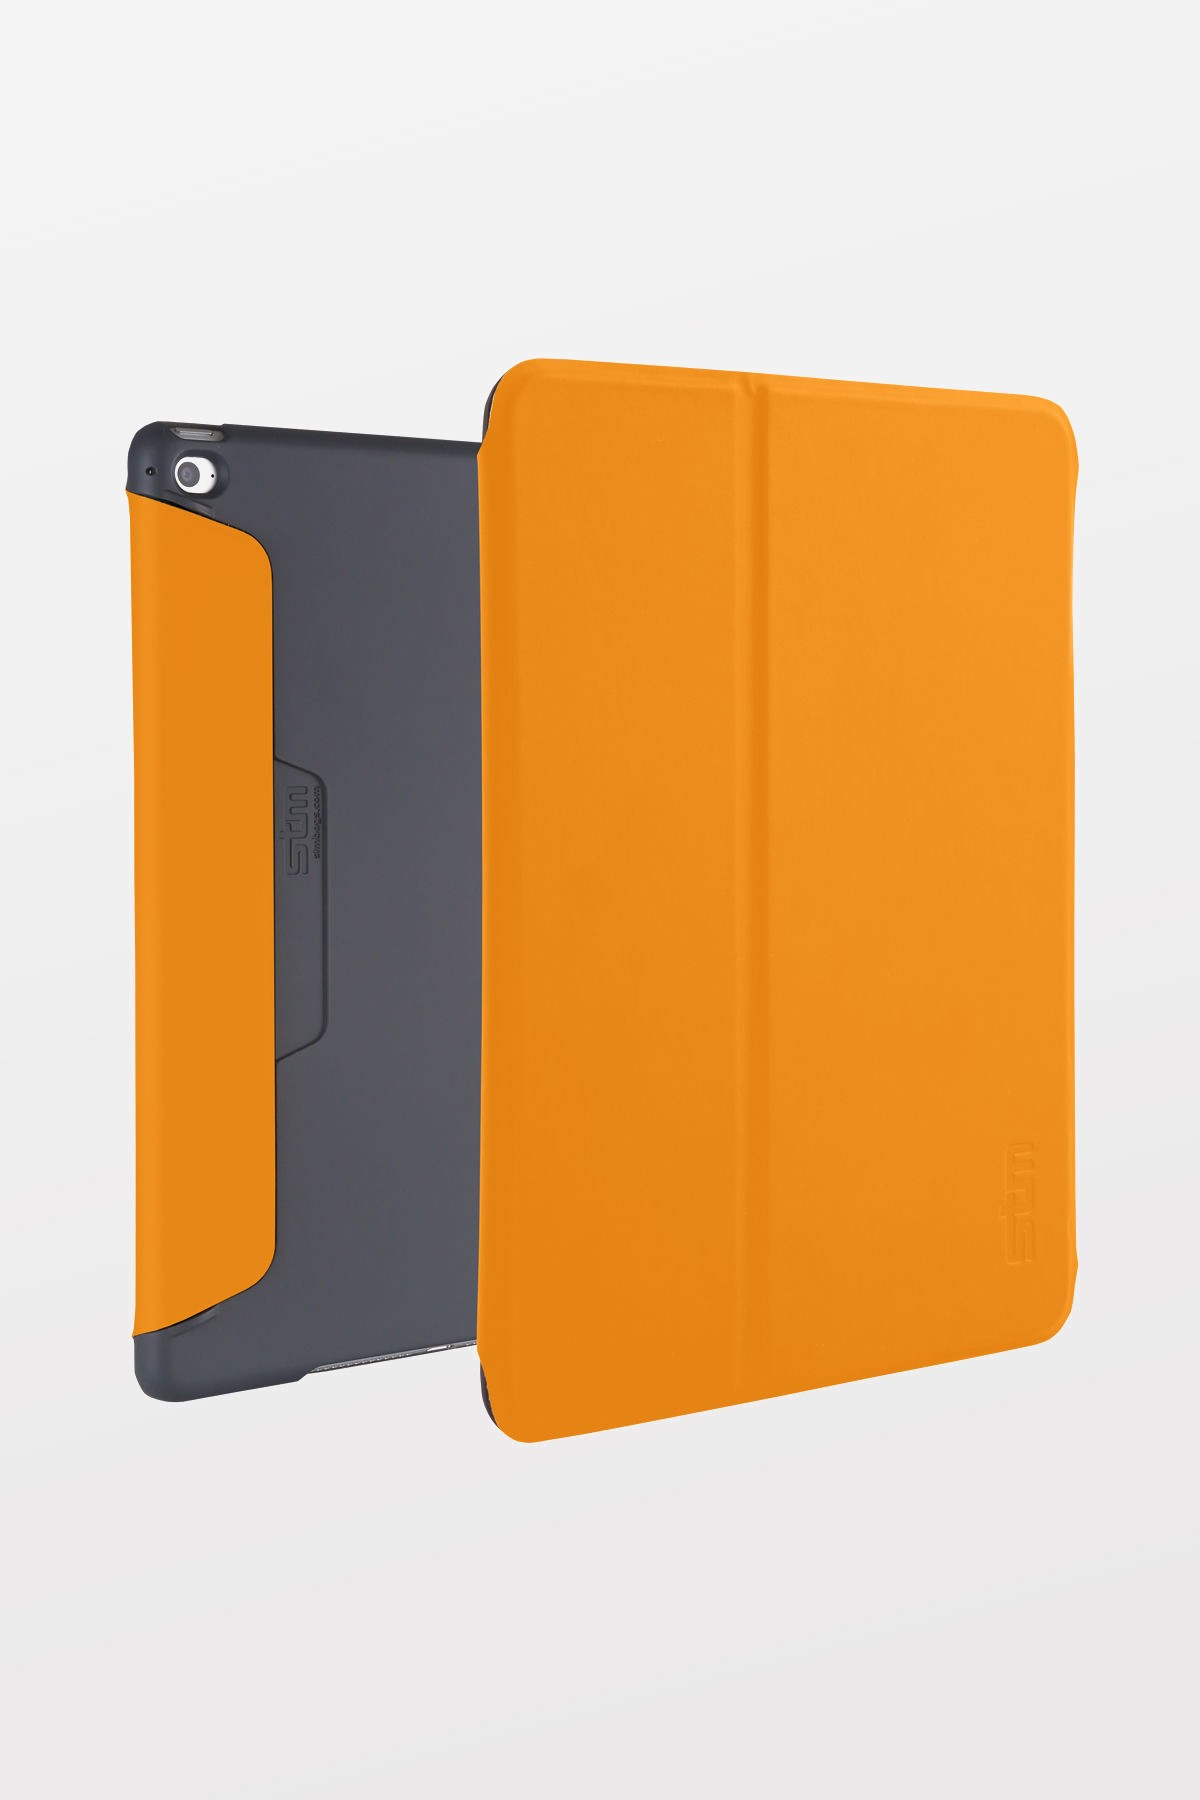 STM Studio Folio Case for iPad Air 2 - Gold